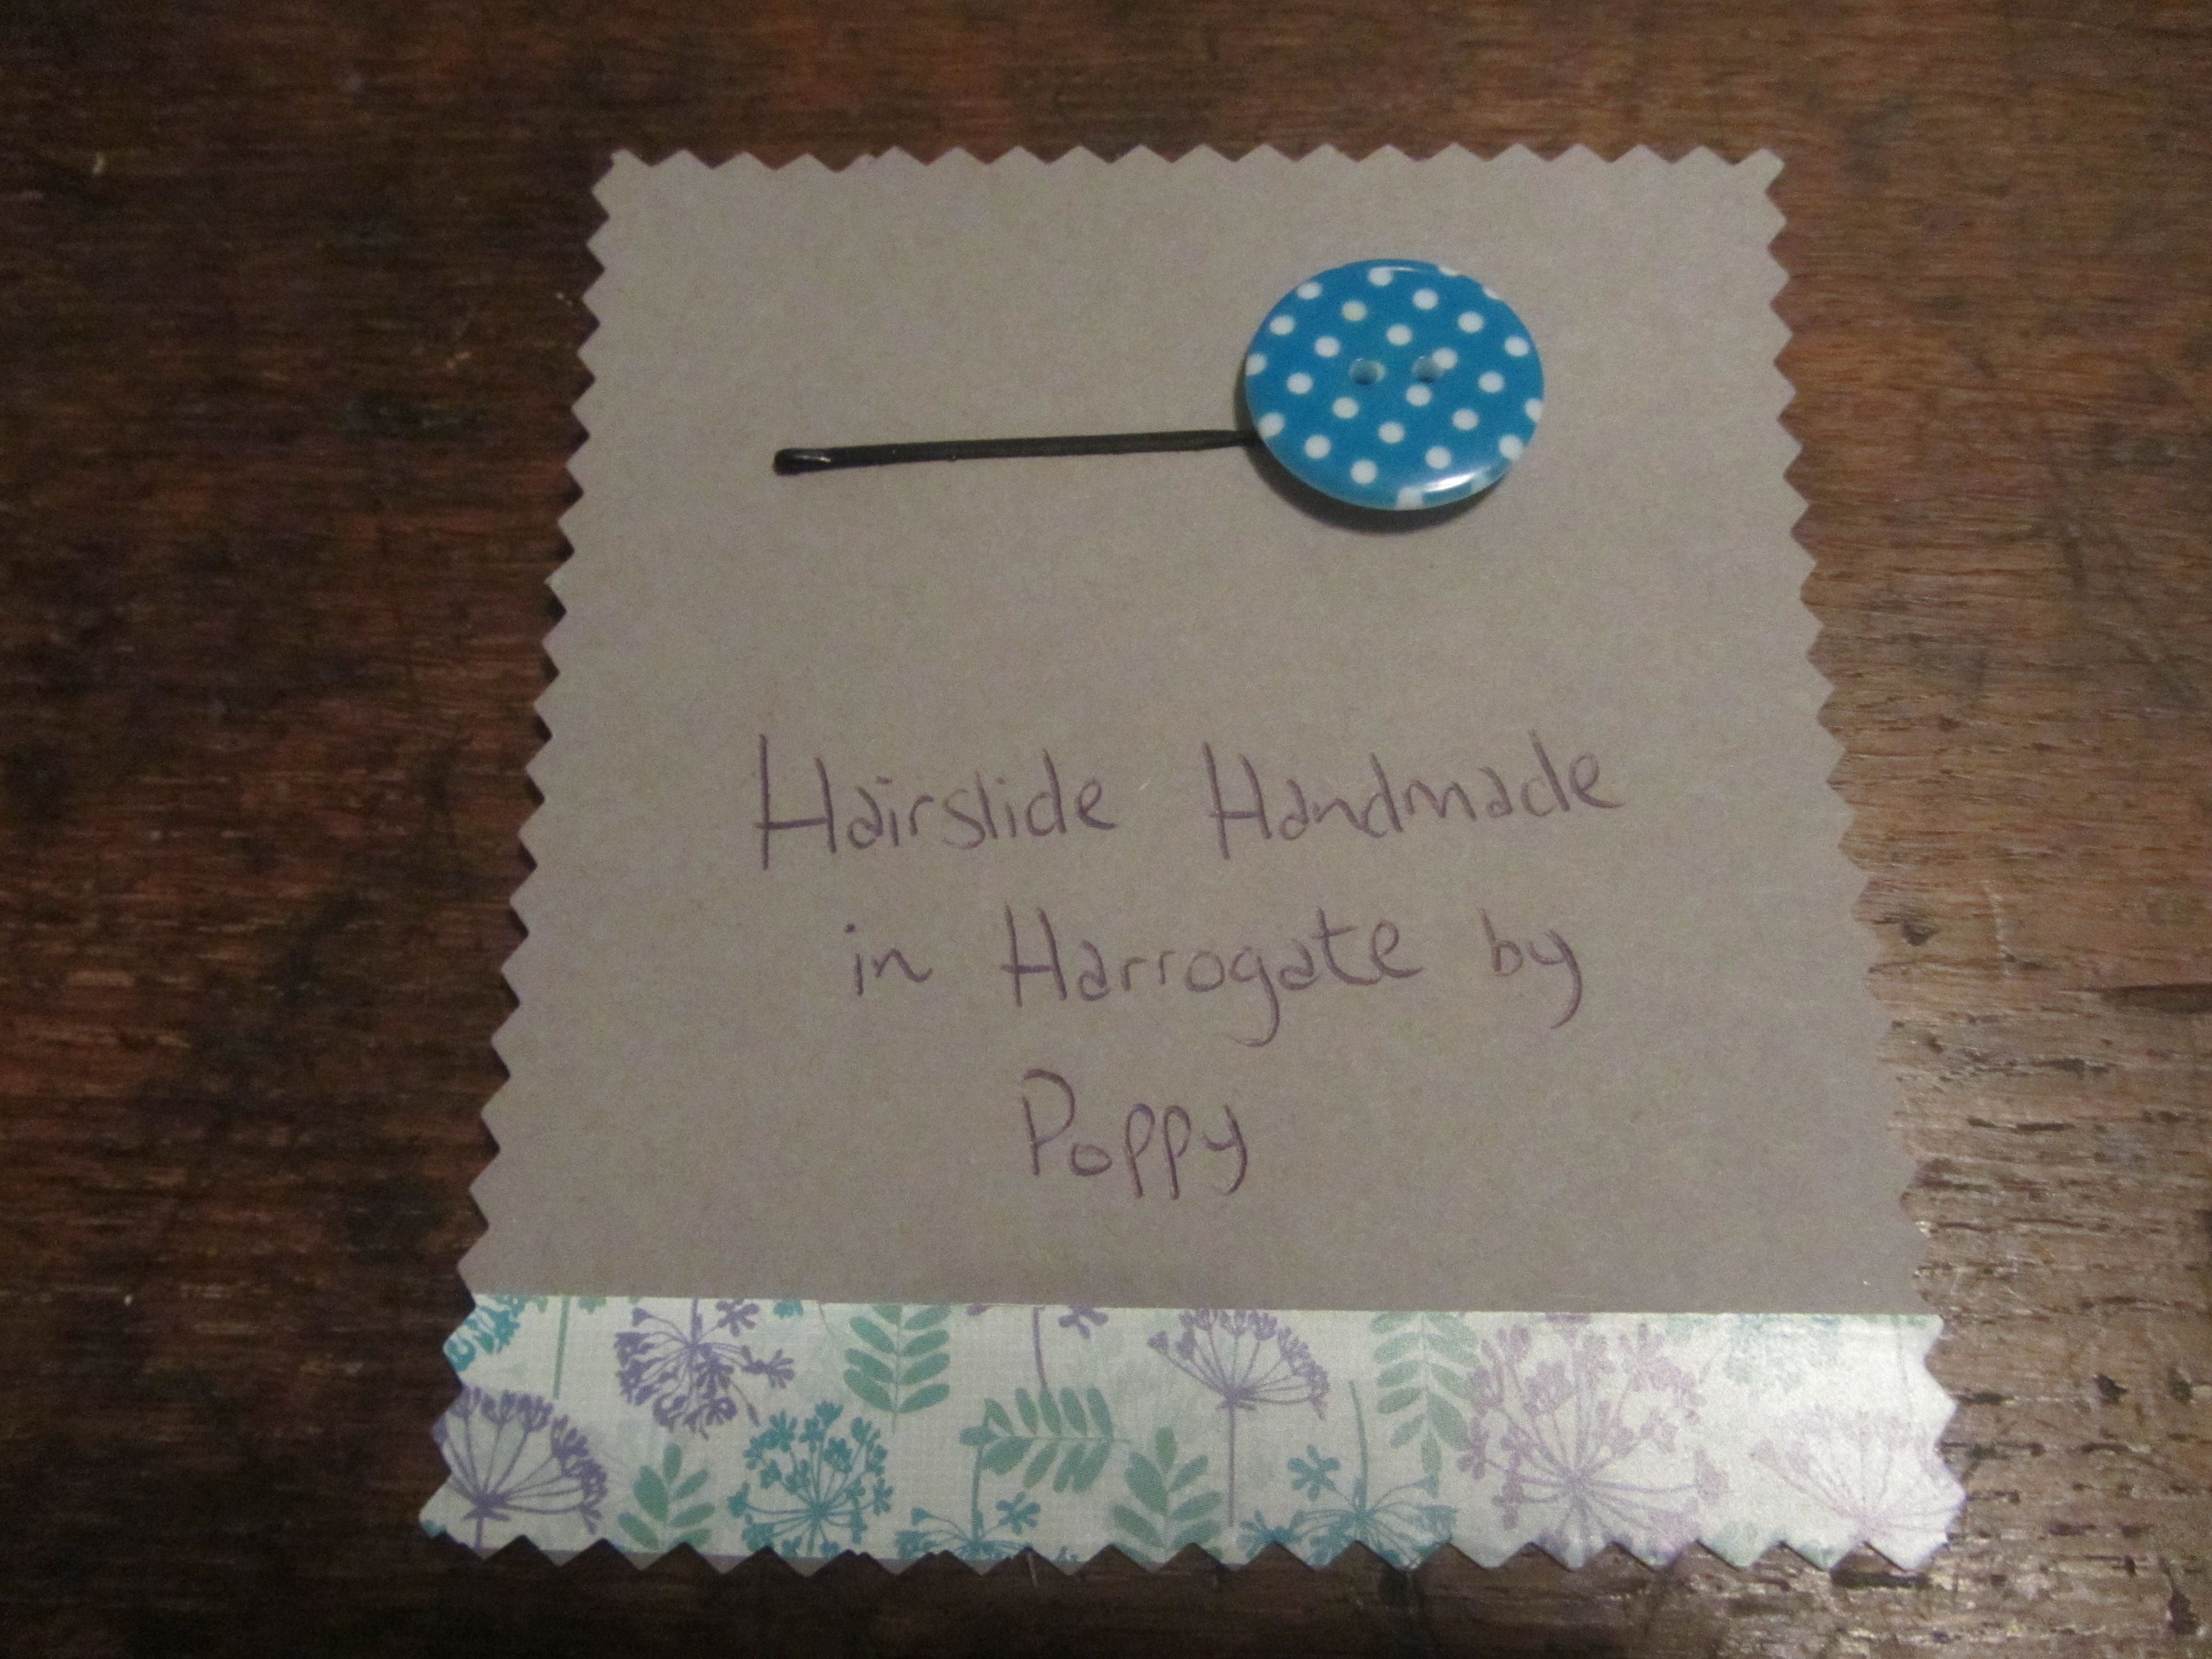 #Hairslides #Handmade in #Harrogate by Poppy. I love this turquoise and white polka dot button. My range of handmade hairslides are available at Hush Jewellery shop in the Victoria Shopping Centre in Harrogate, North Yorkshire. Come in and see us, we have a fantastic range of jewellery, scarves and accesories. Or have a look at the shop on their Twitter, @HushJewellery, and my hairslides on Twitter @Poppys_Buttons. Thank you!